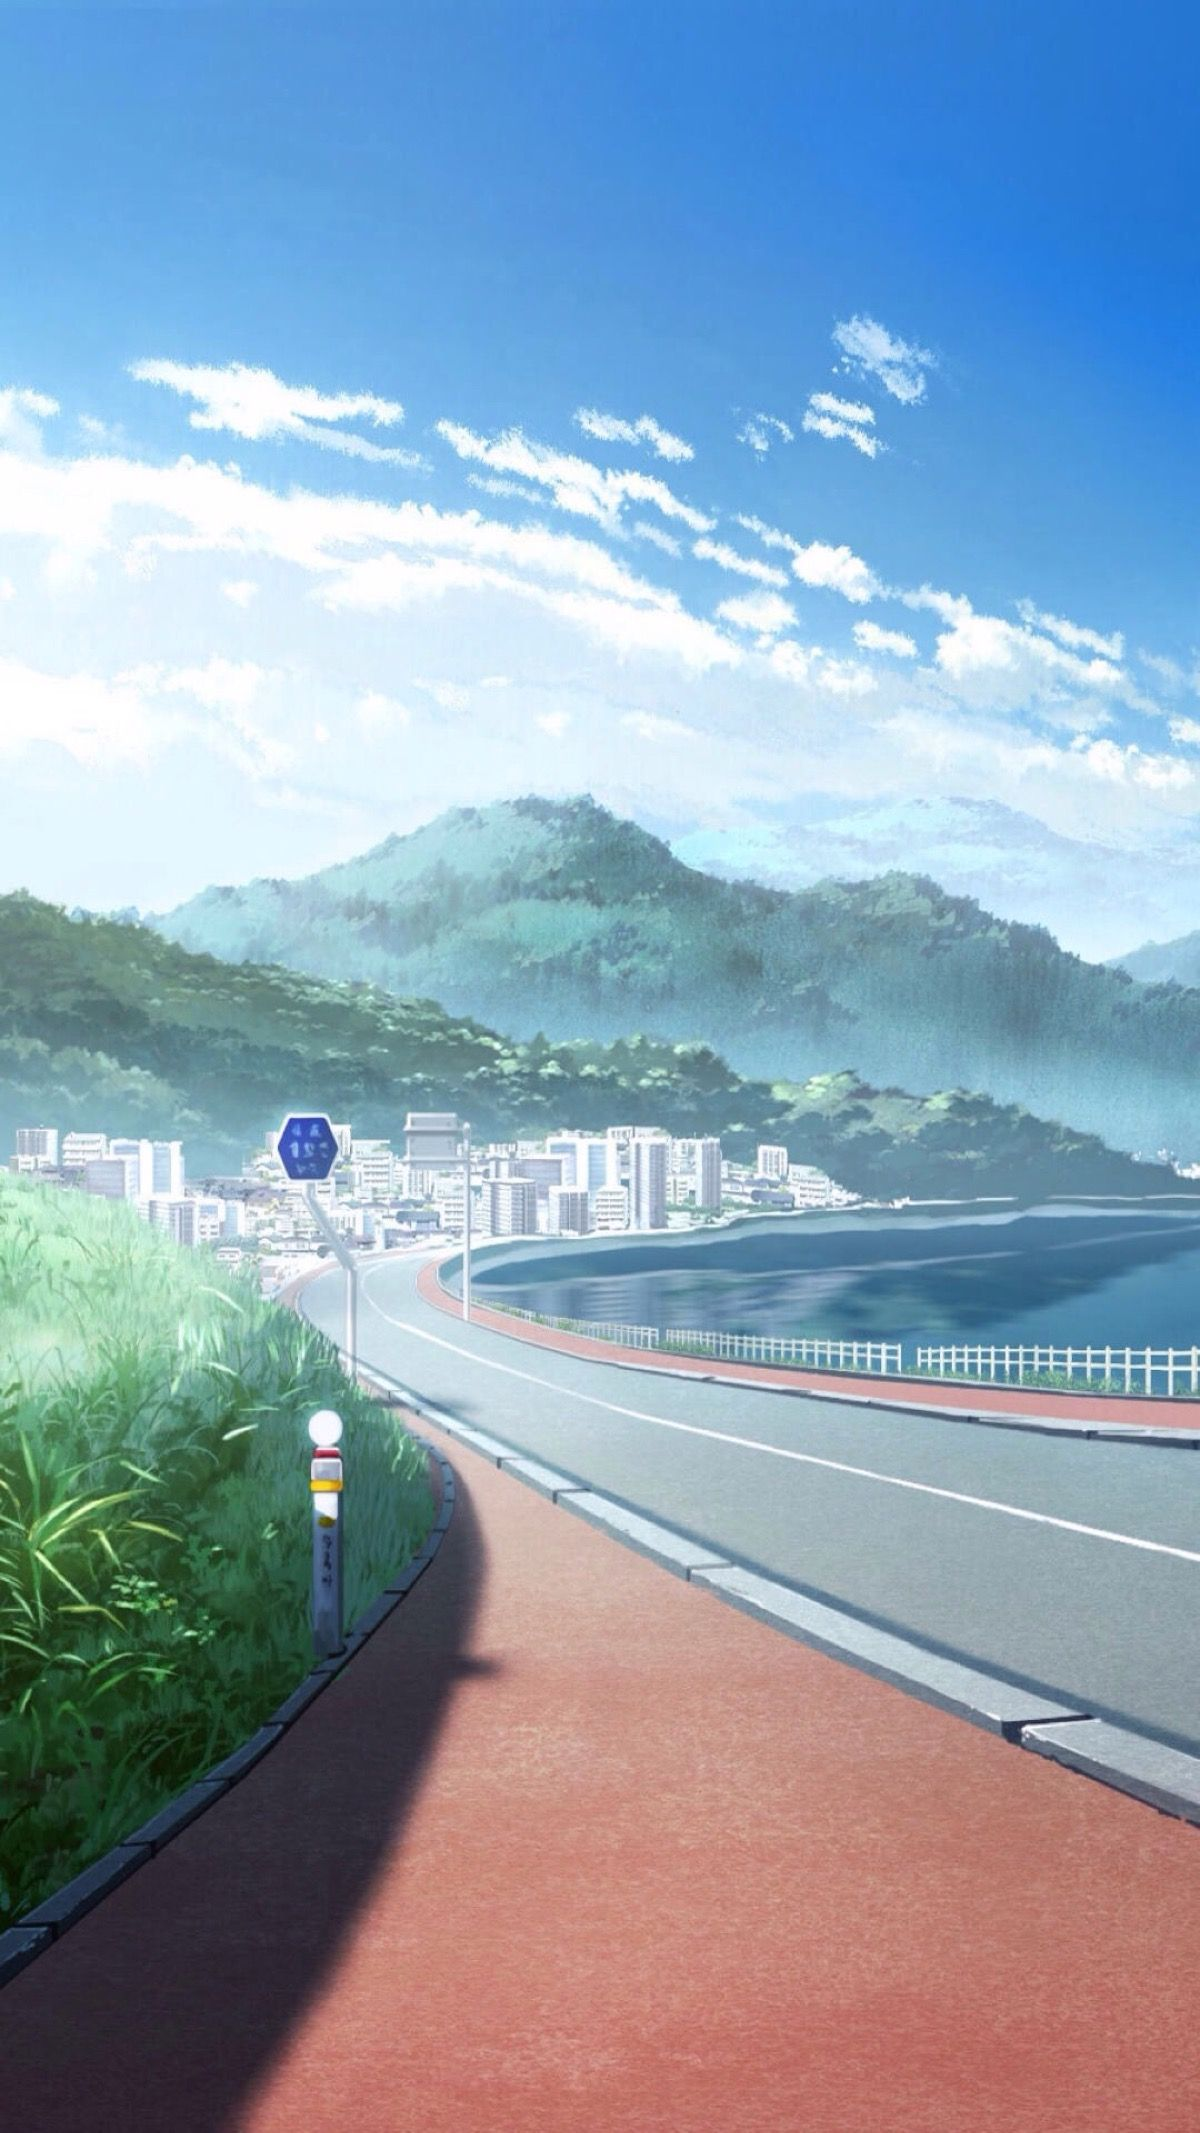 Master anime ecchi picture wallpapers city anime - Anime backdrop wallpaper ...